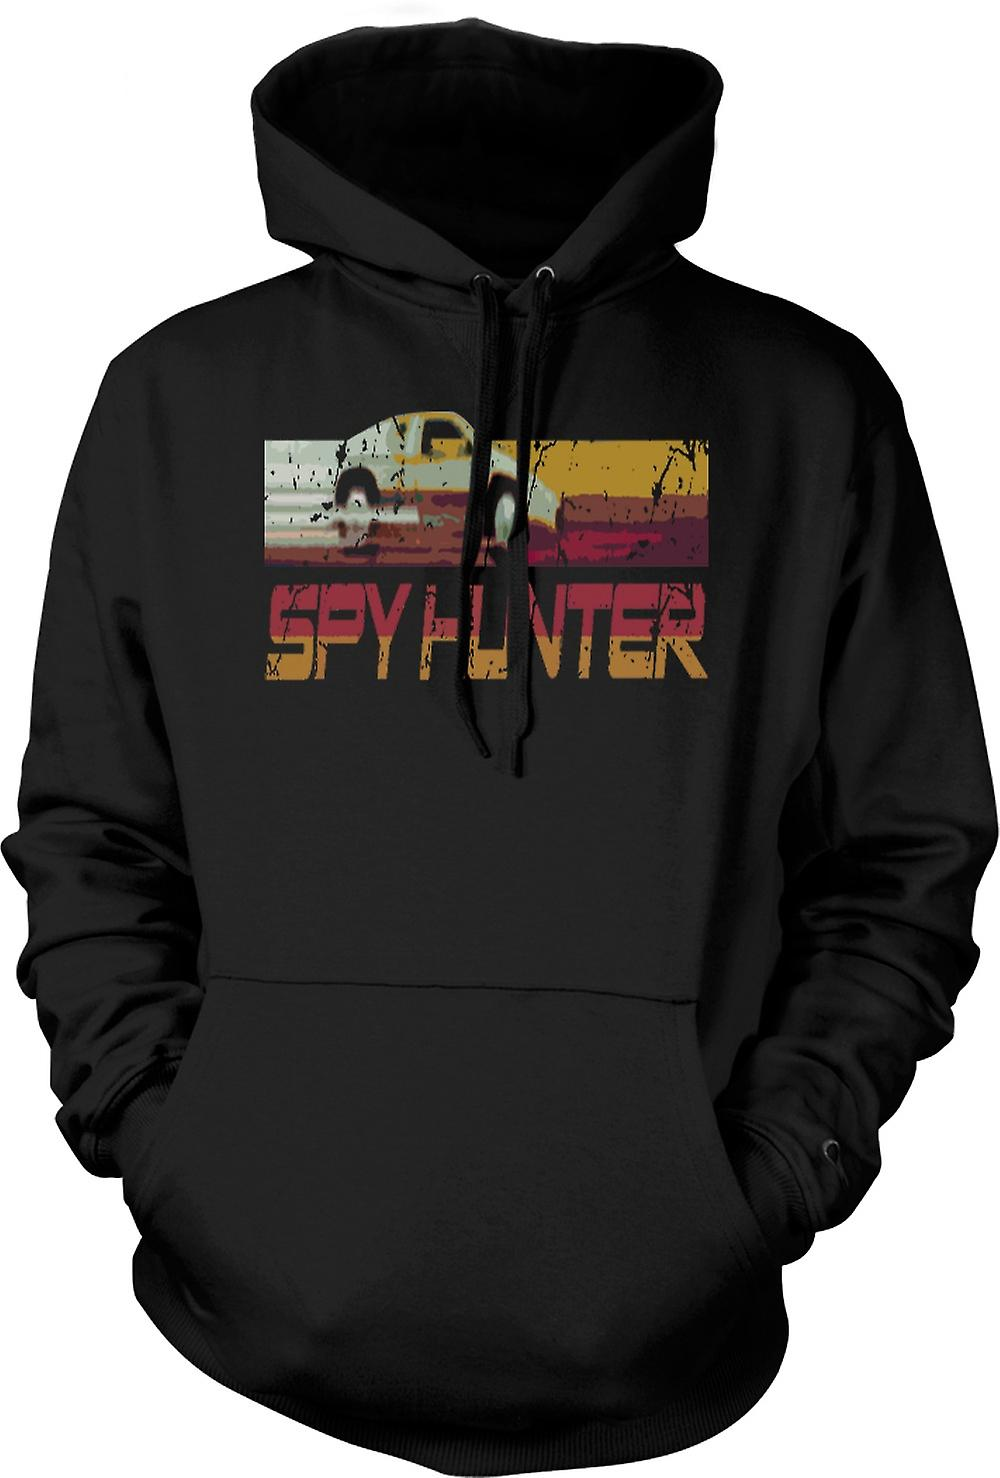 Mens Hoodie - Spyhunter - C64 - Retro computerspel 0s